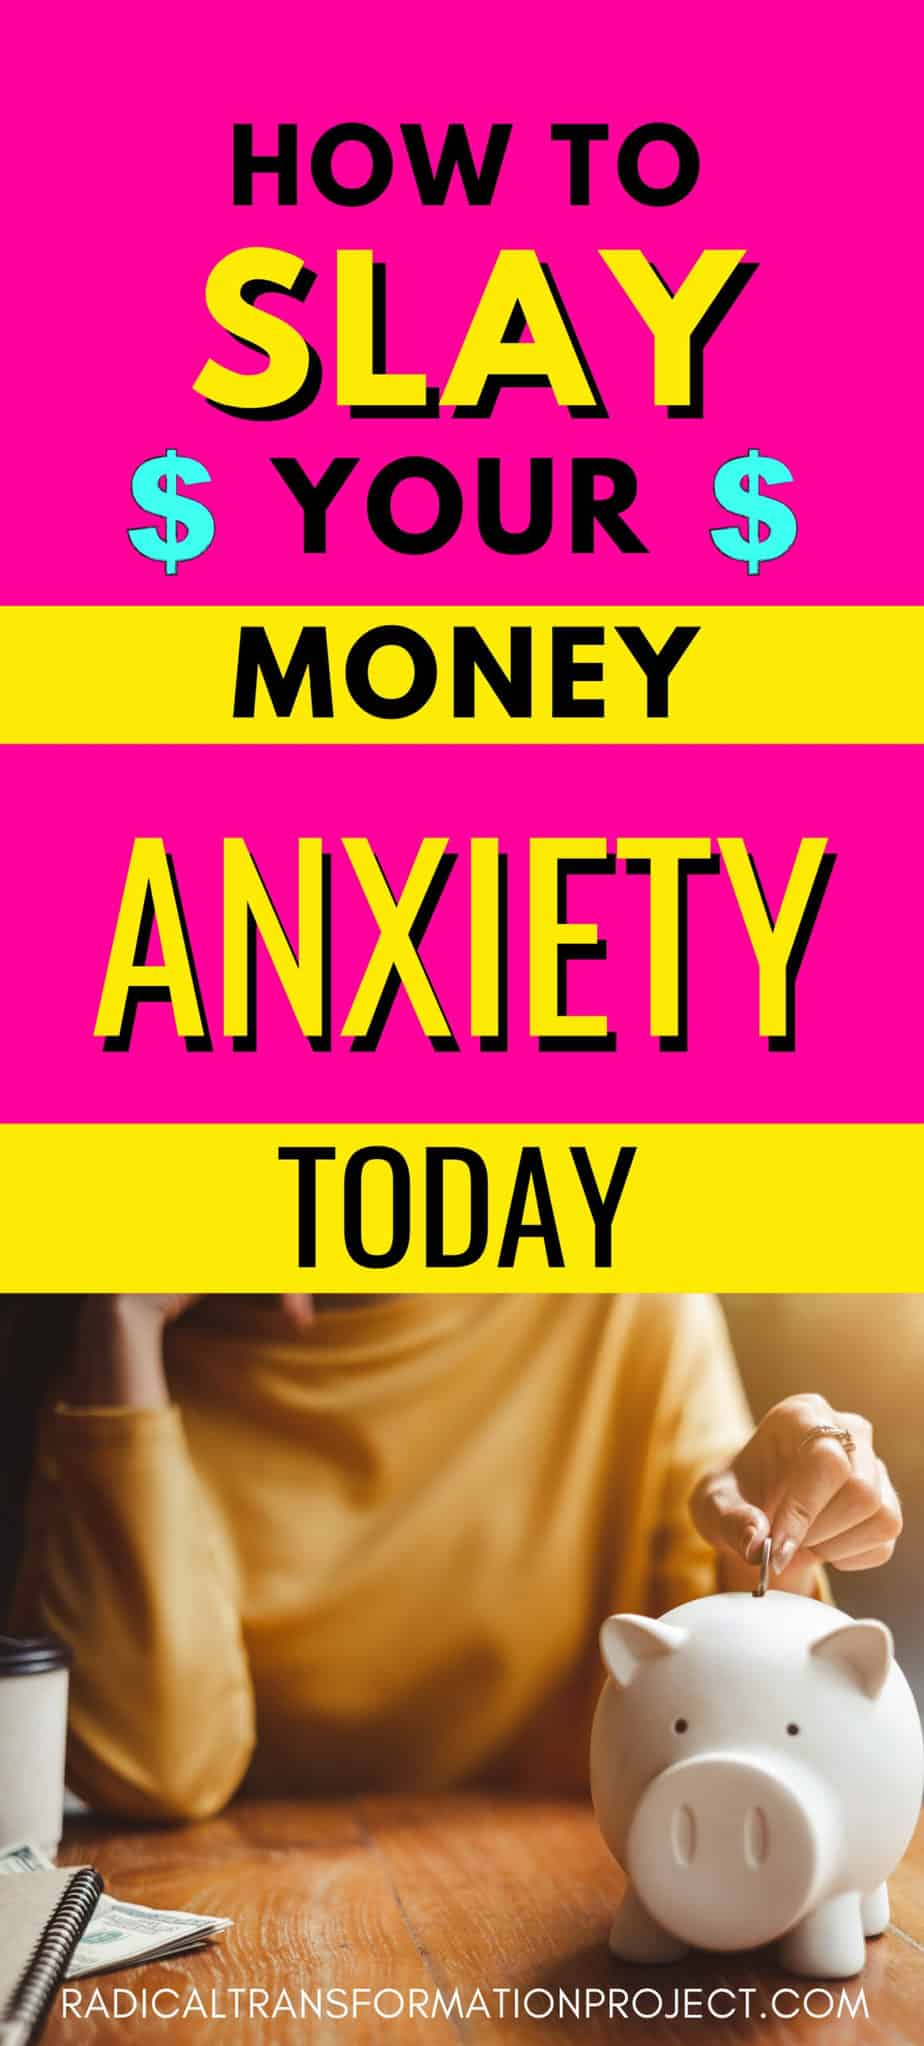 how to slay your money anxiety today